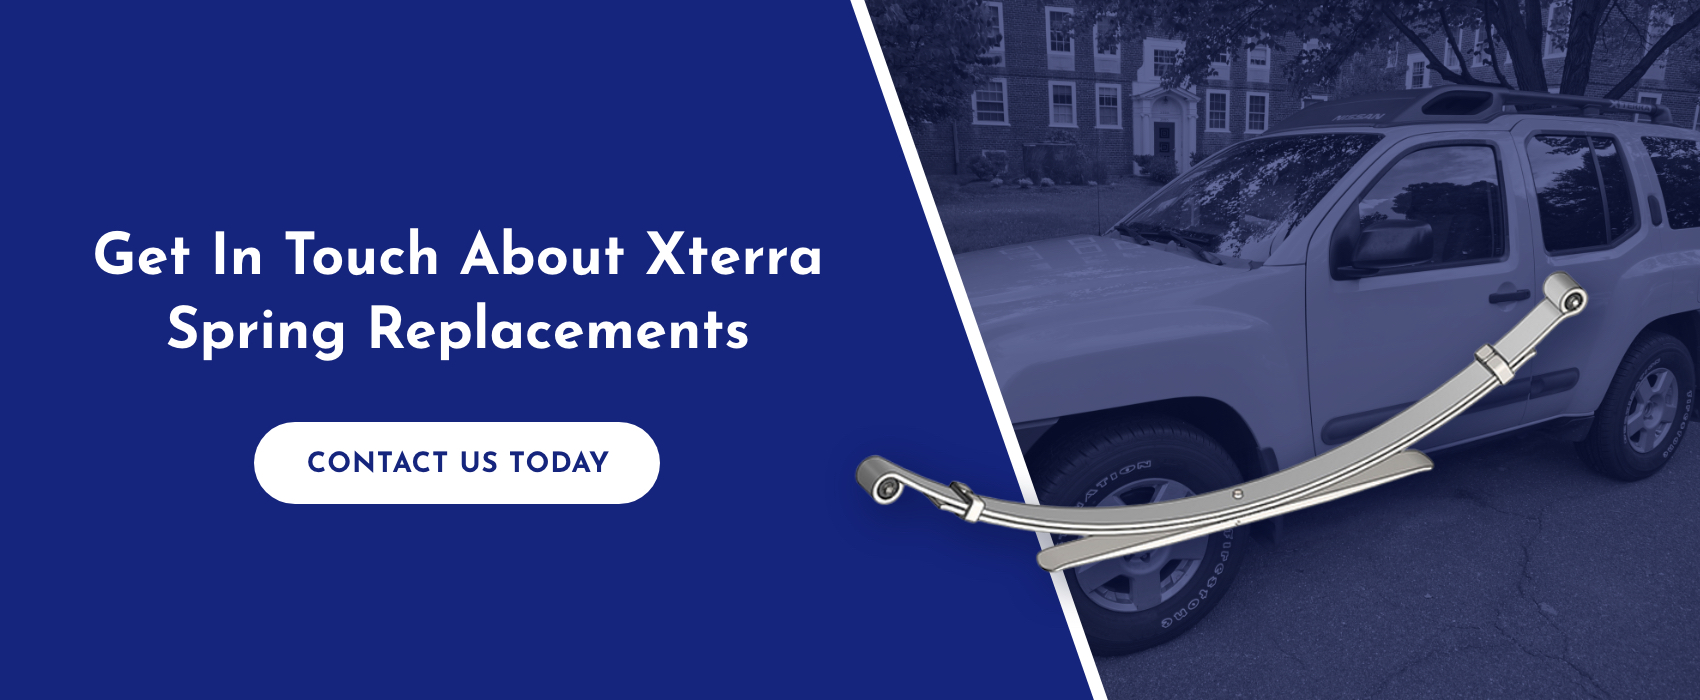 02-get-in-touch-about-xterra-spring-replacements.jpg